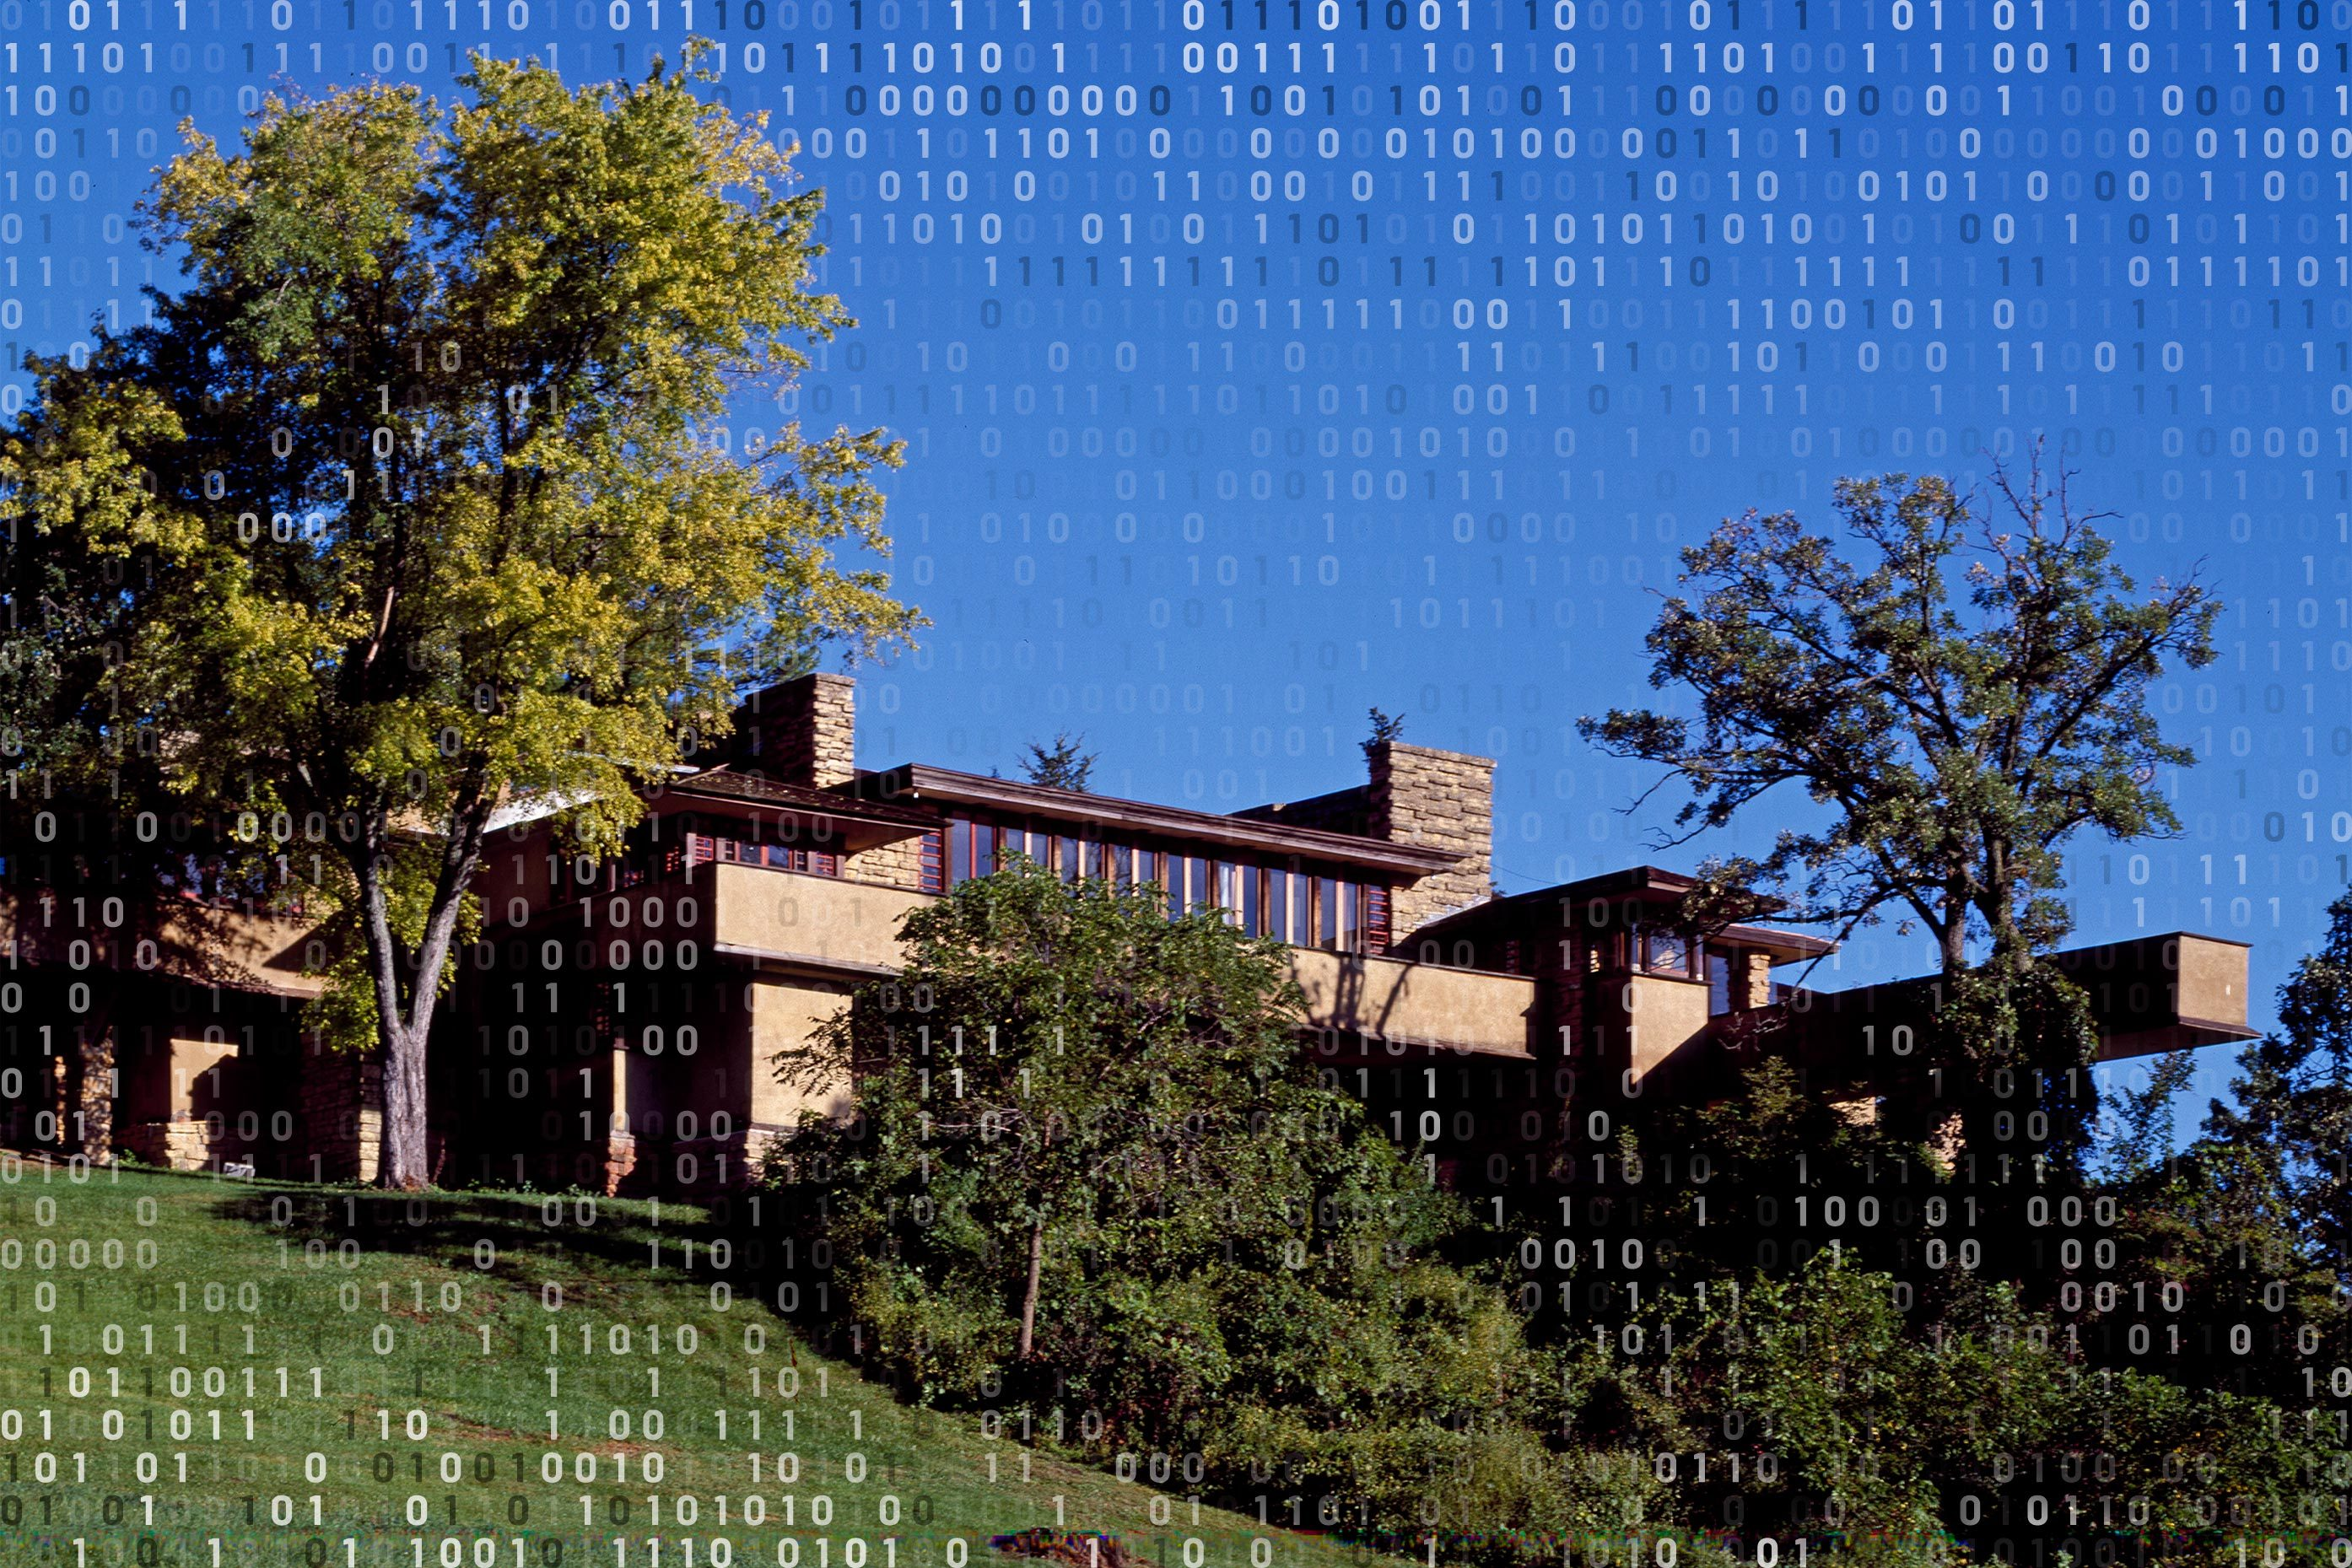 frank lloyd wright's house with computer binary code overlay